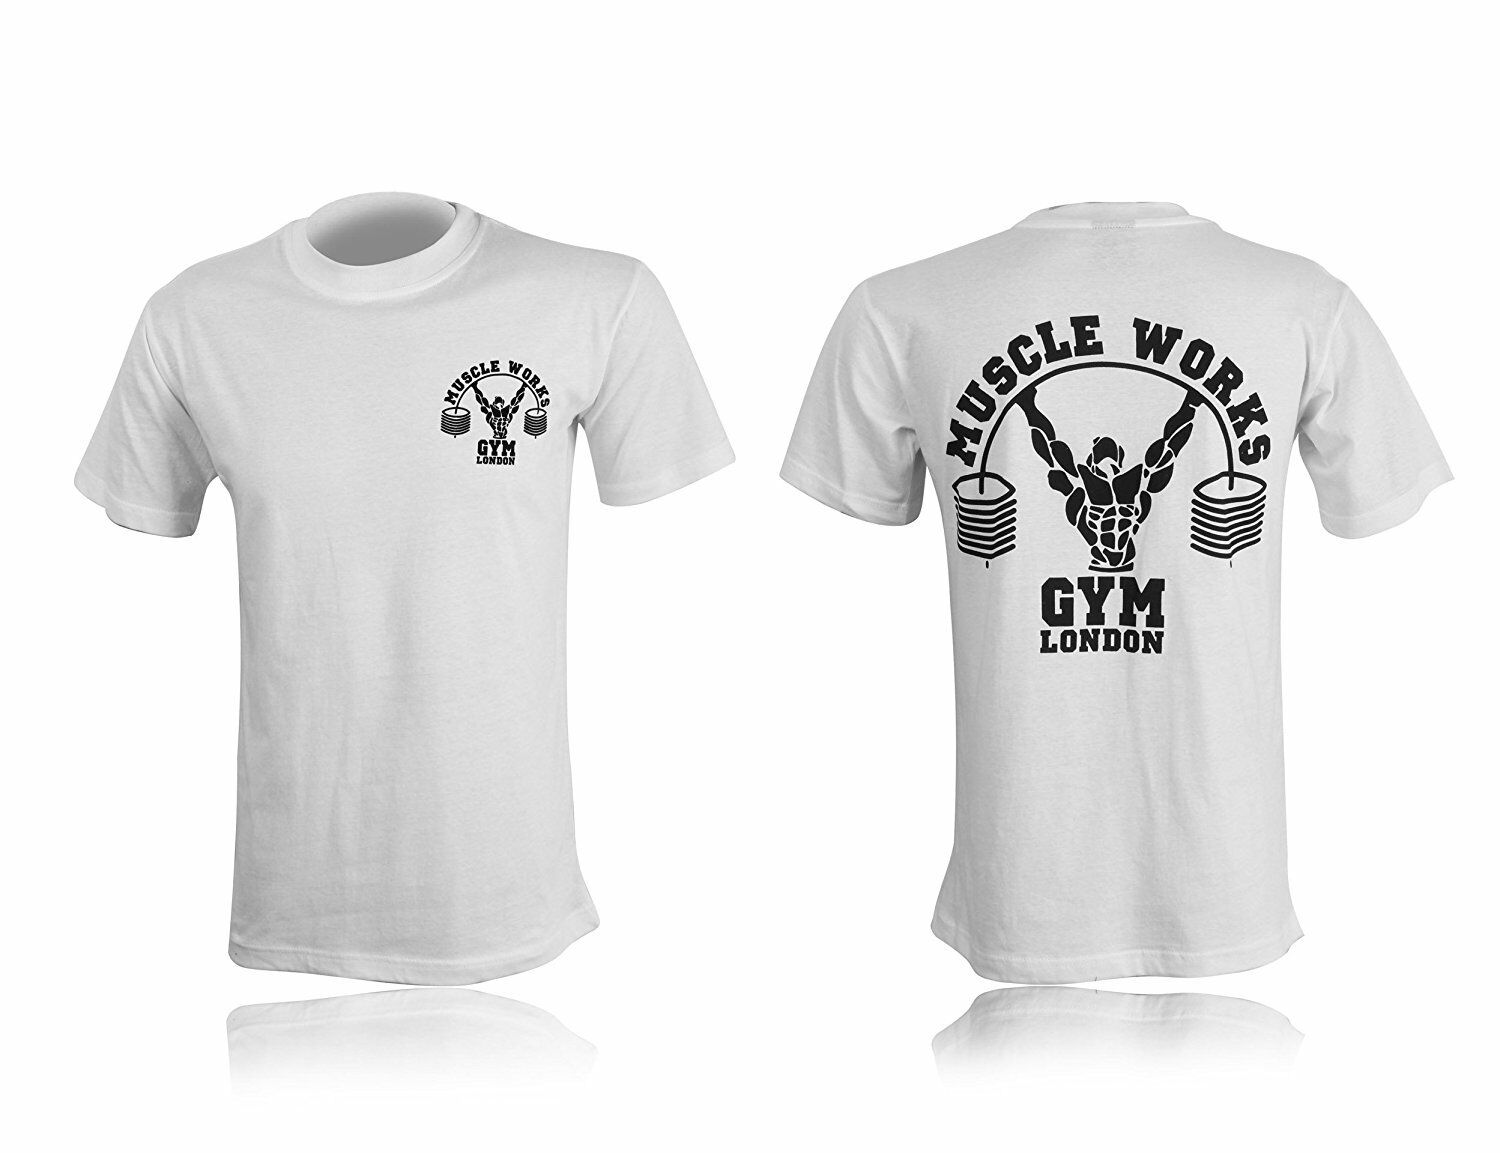 Original Muscle Works Gym London T-Shirts Summer Offer Must Go 70/% Off